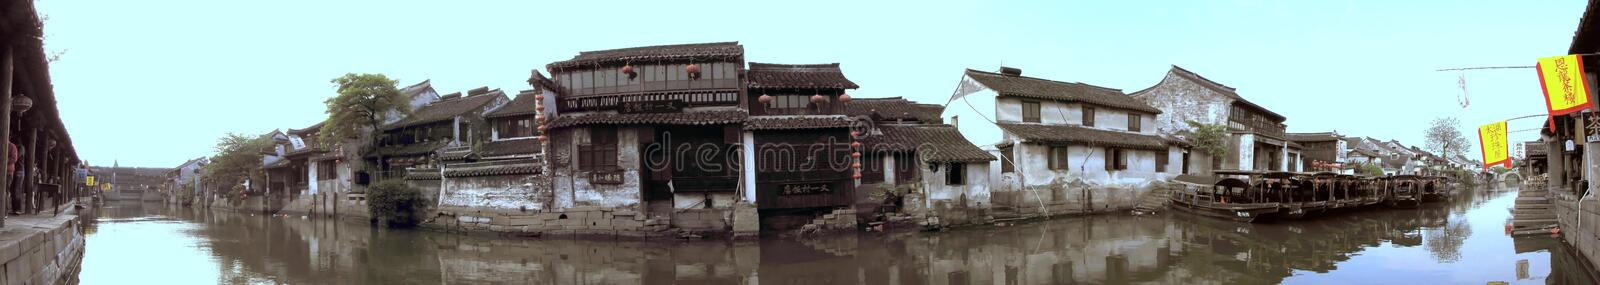 XiTang,ZheJiang China royalty free stock image